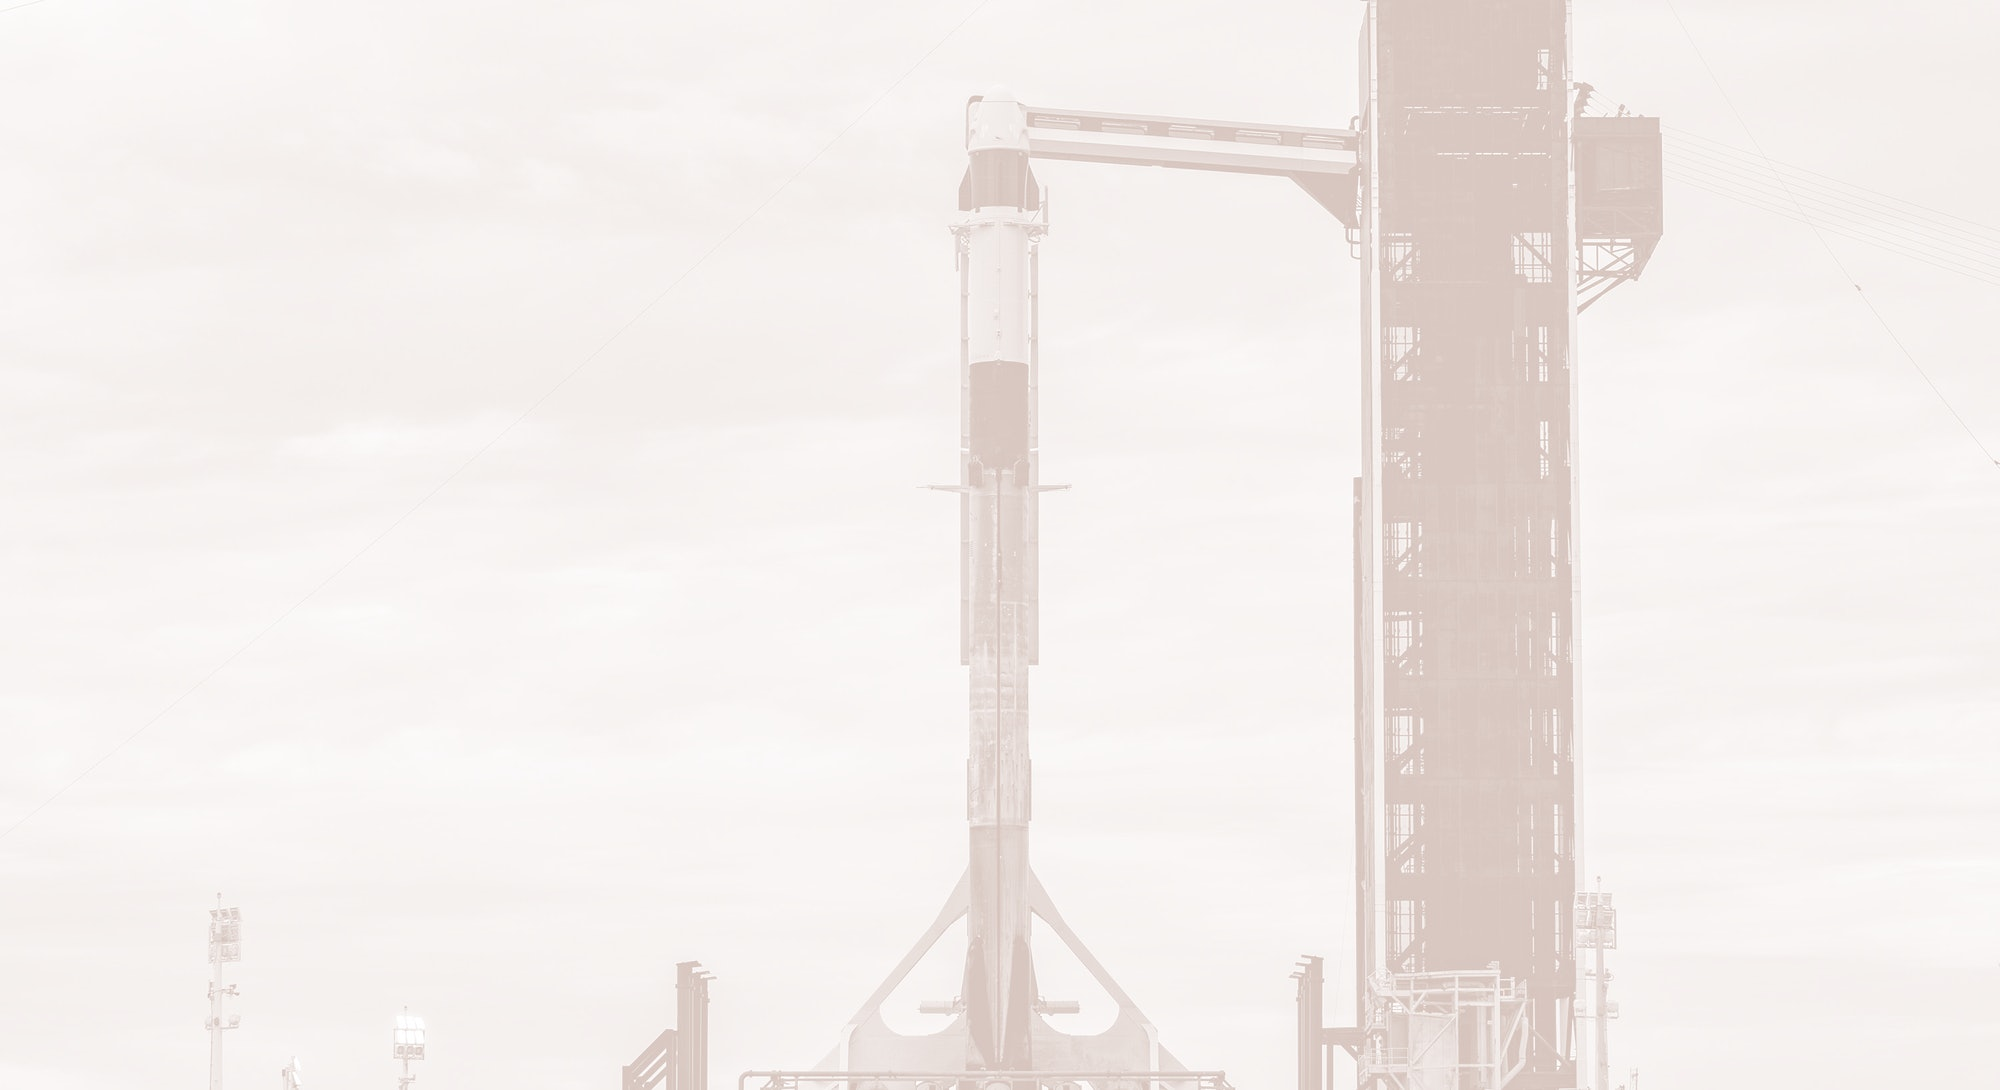 Falcon 9 rocket and Crew Dragon capsule on launchpad